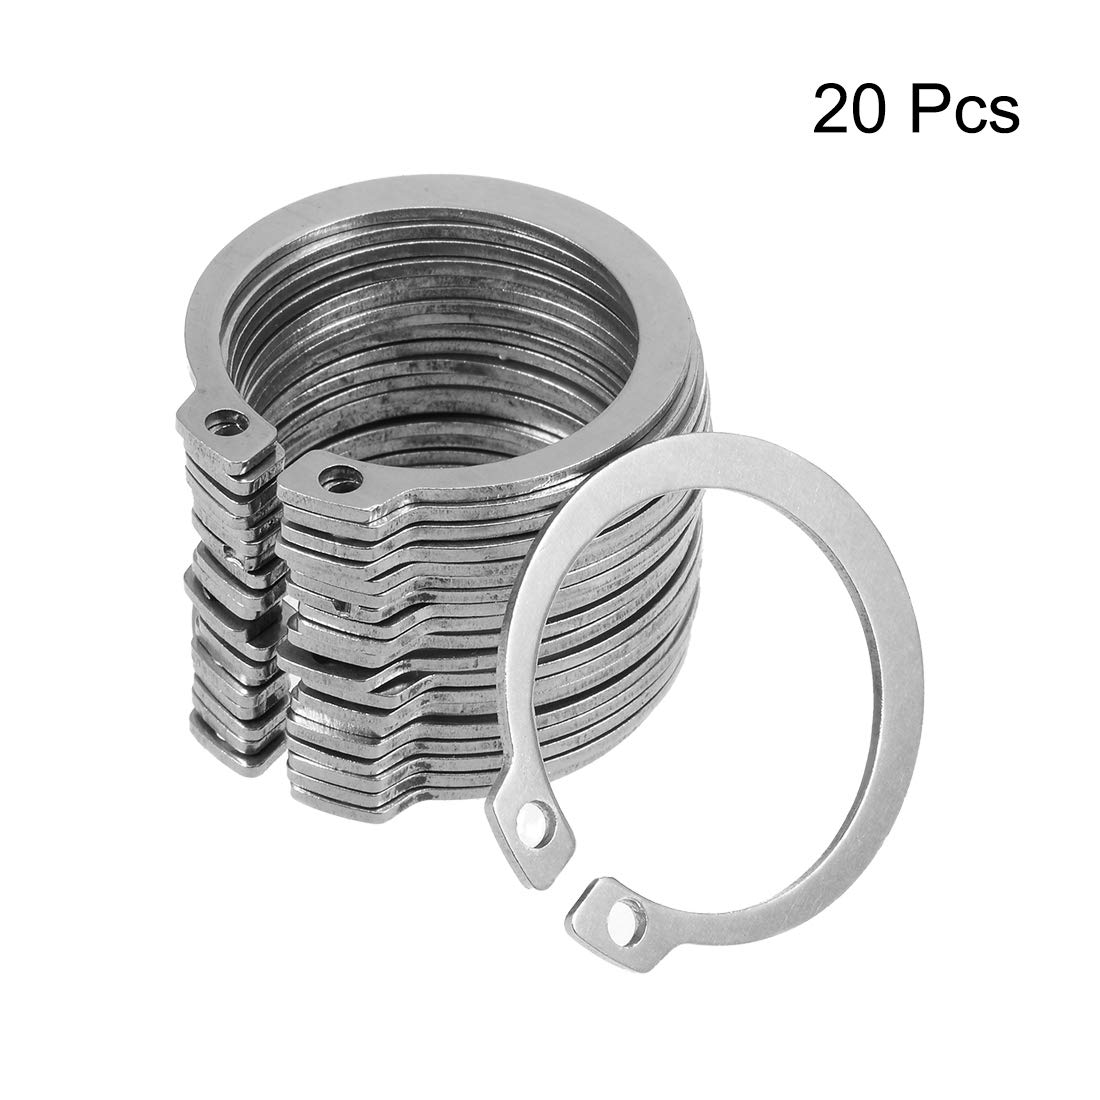 uxcell 39mm External Circlips C-Clip Retaining Snap Rings 304 Stainless Steel 20pcs